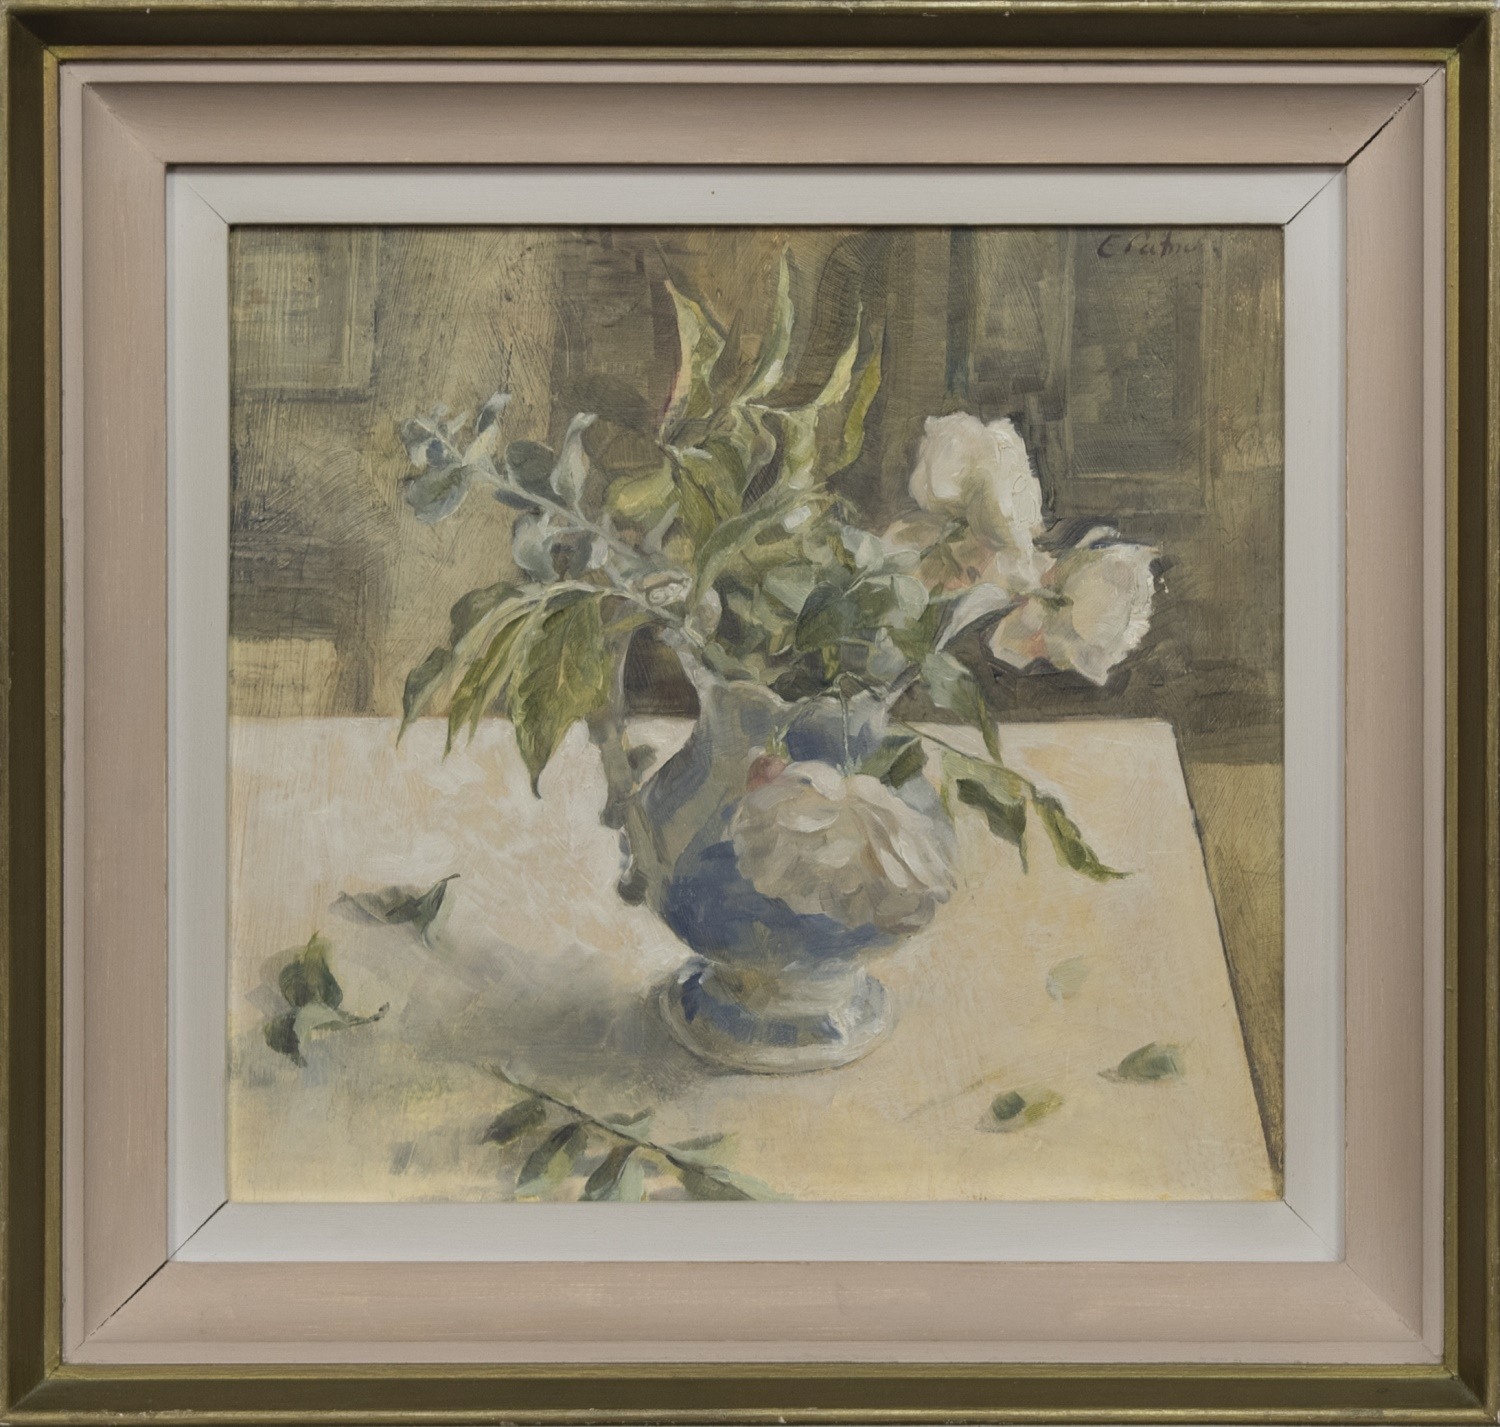 THREE WHITE ROSES IN A BLUE JUG, AN OIL BY EMILY PATRICK